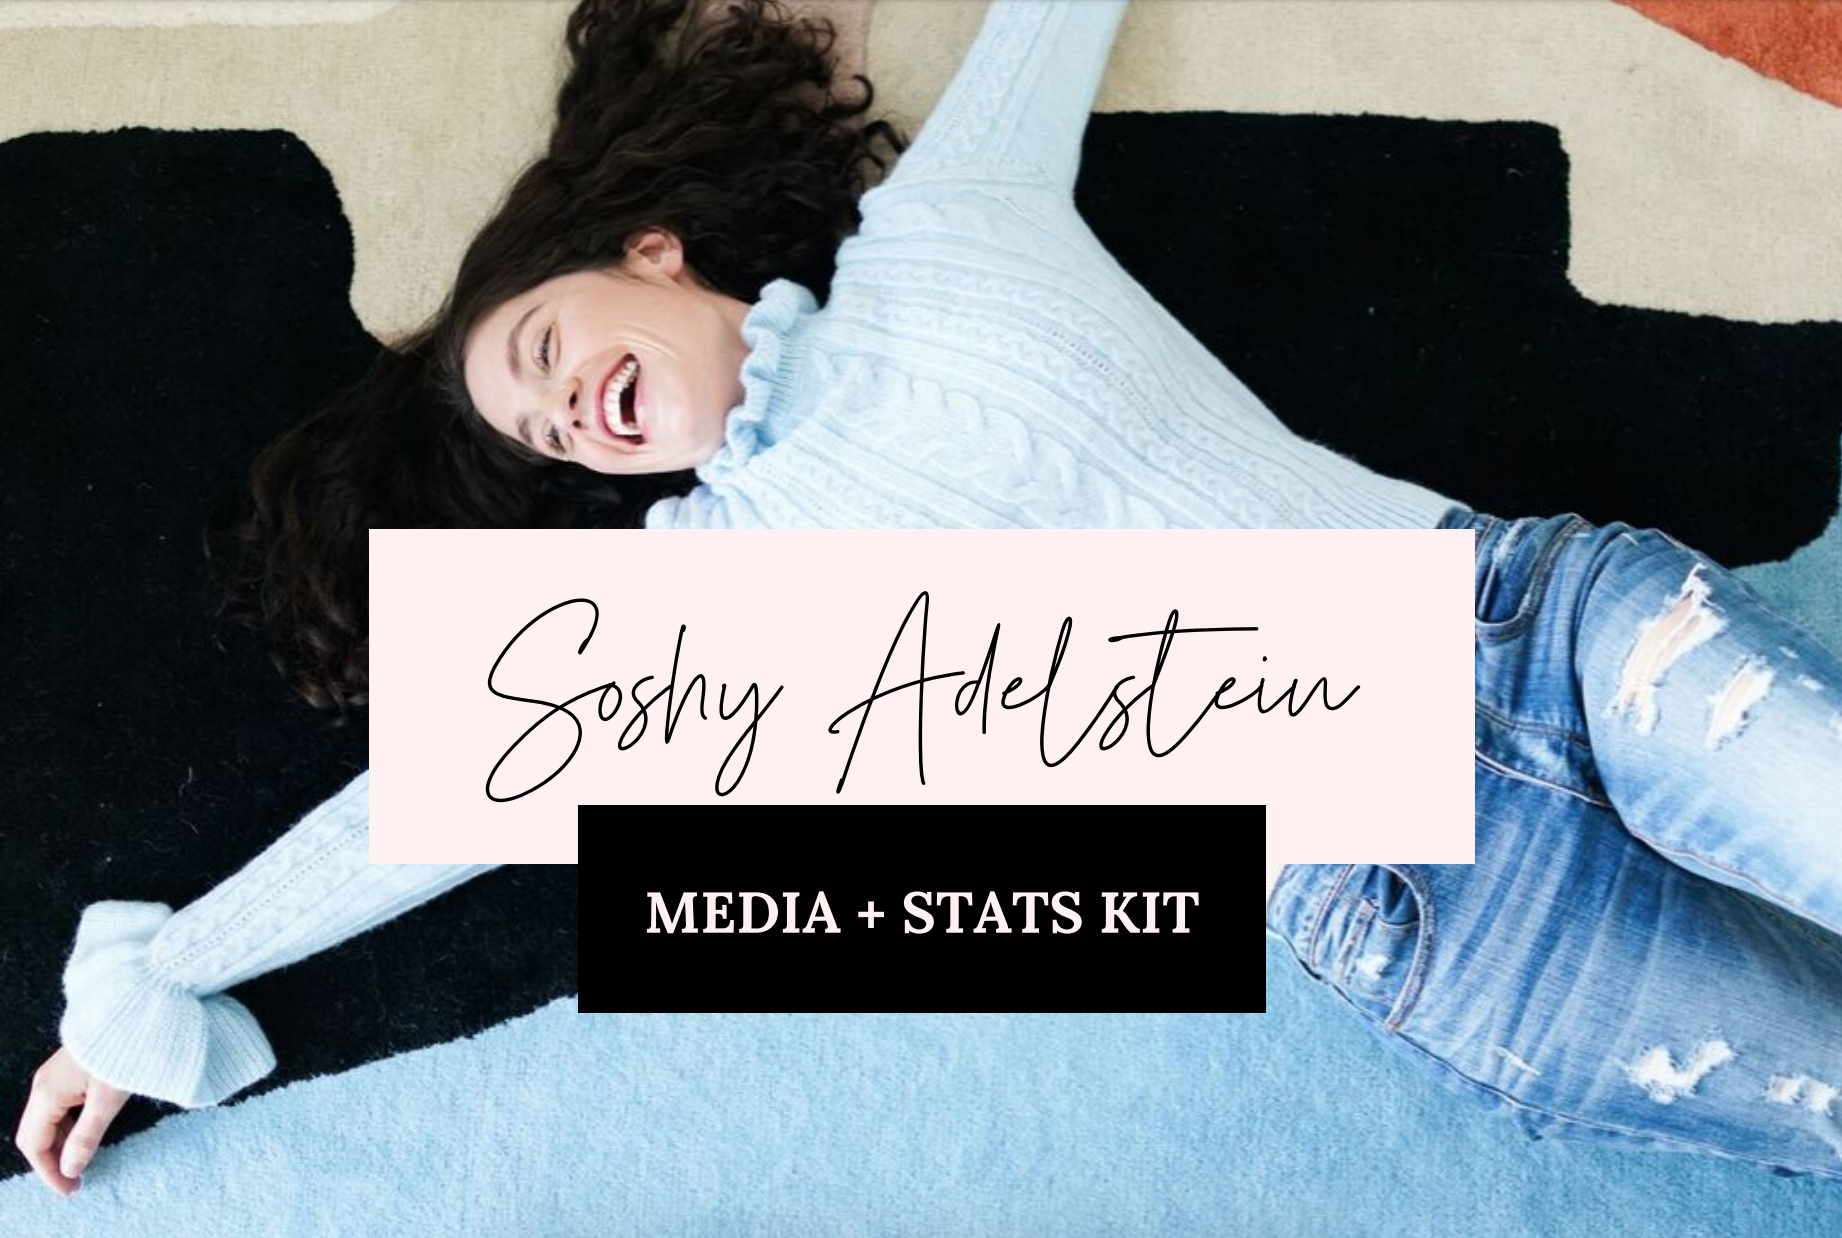 Soshy Adelstein Media Kit